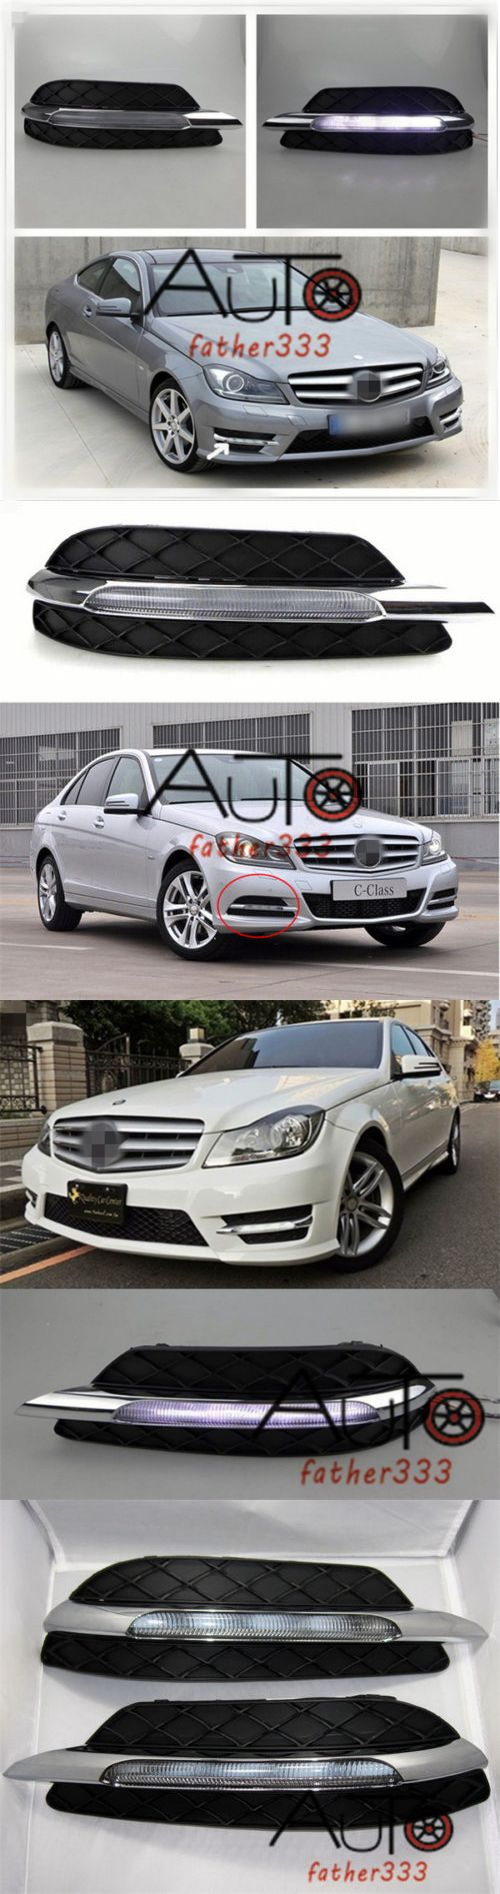 best 25+ new mercedes c class ideas on pinterest | c class